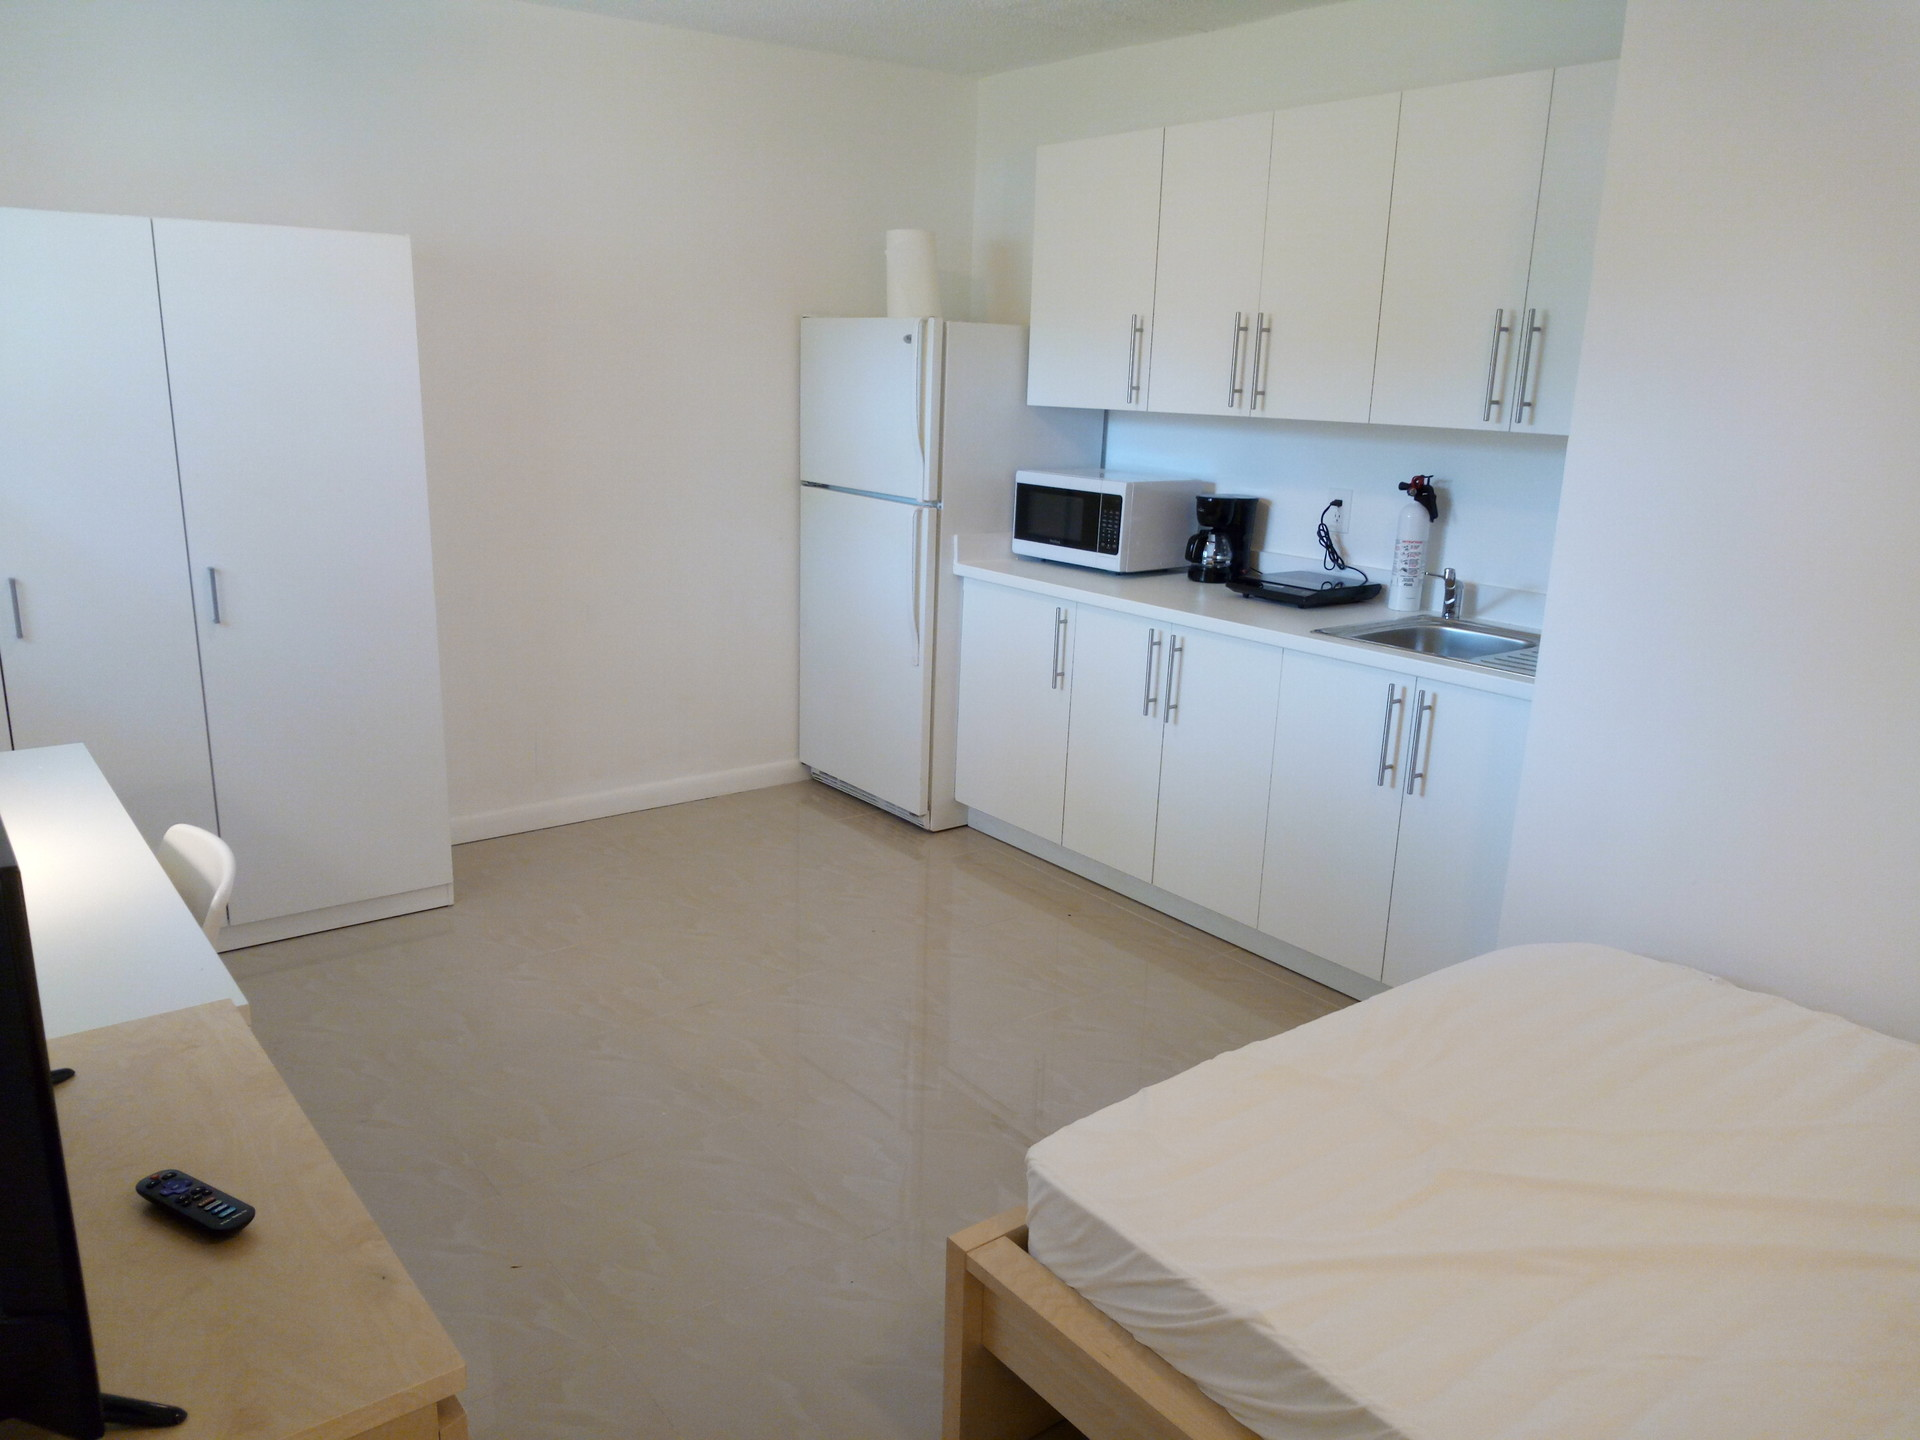 Modern Efficiency In South Miami 15 Min Walk From University Of